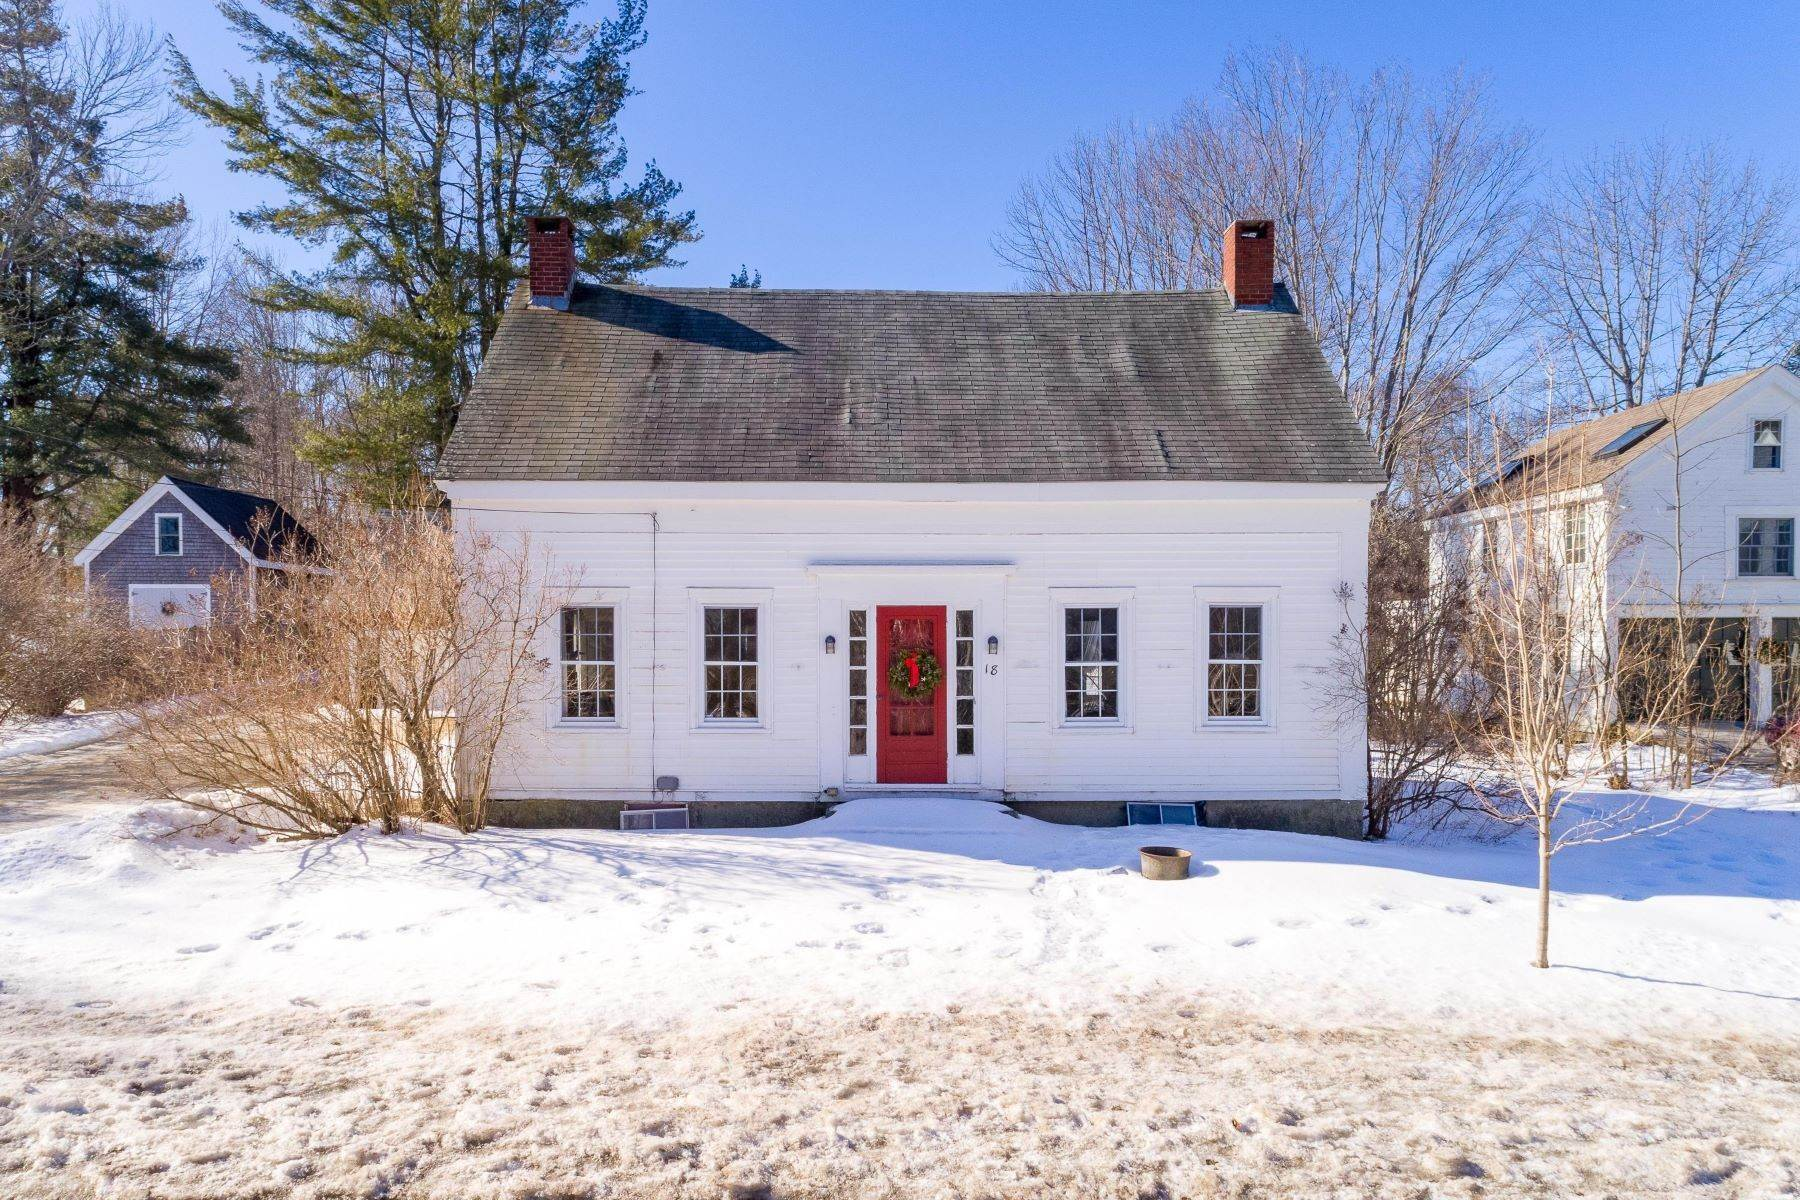 Single Family Homes for Sale at 18 Main Street Freeport, Maine 04032 United States